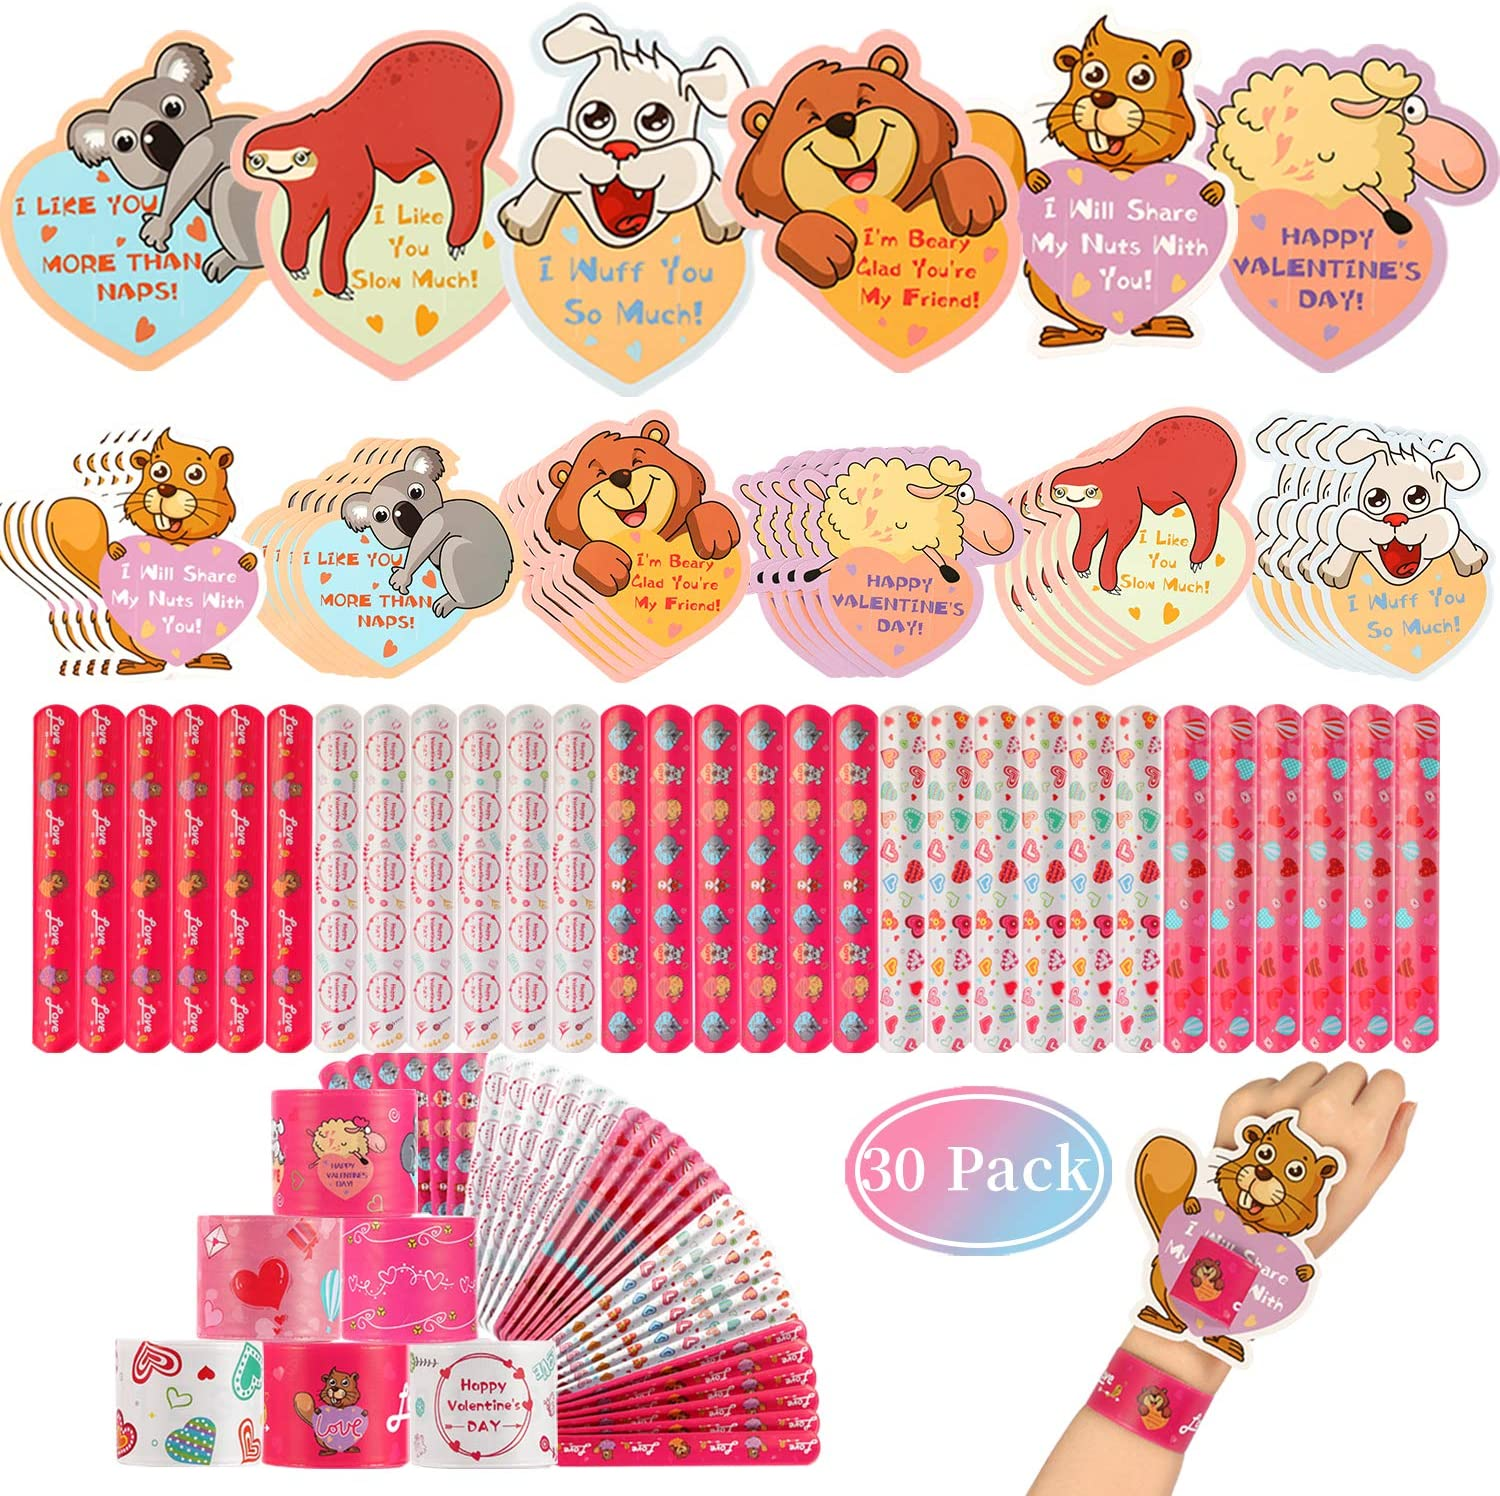 Mibor Valentines Day Cards for Kids - 30 Slap Bracelets + 30 Valentines Cards for Kids Class, 6 Cute Animals Patterns Cards, Kids Valentines Day Cards for School Classroom Valentines Day Decorations